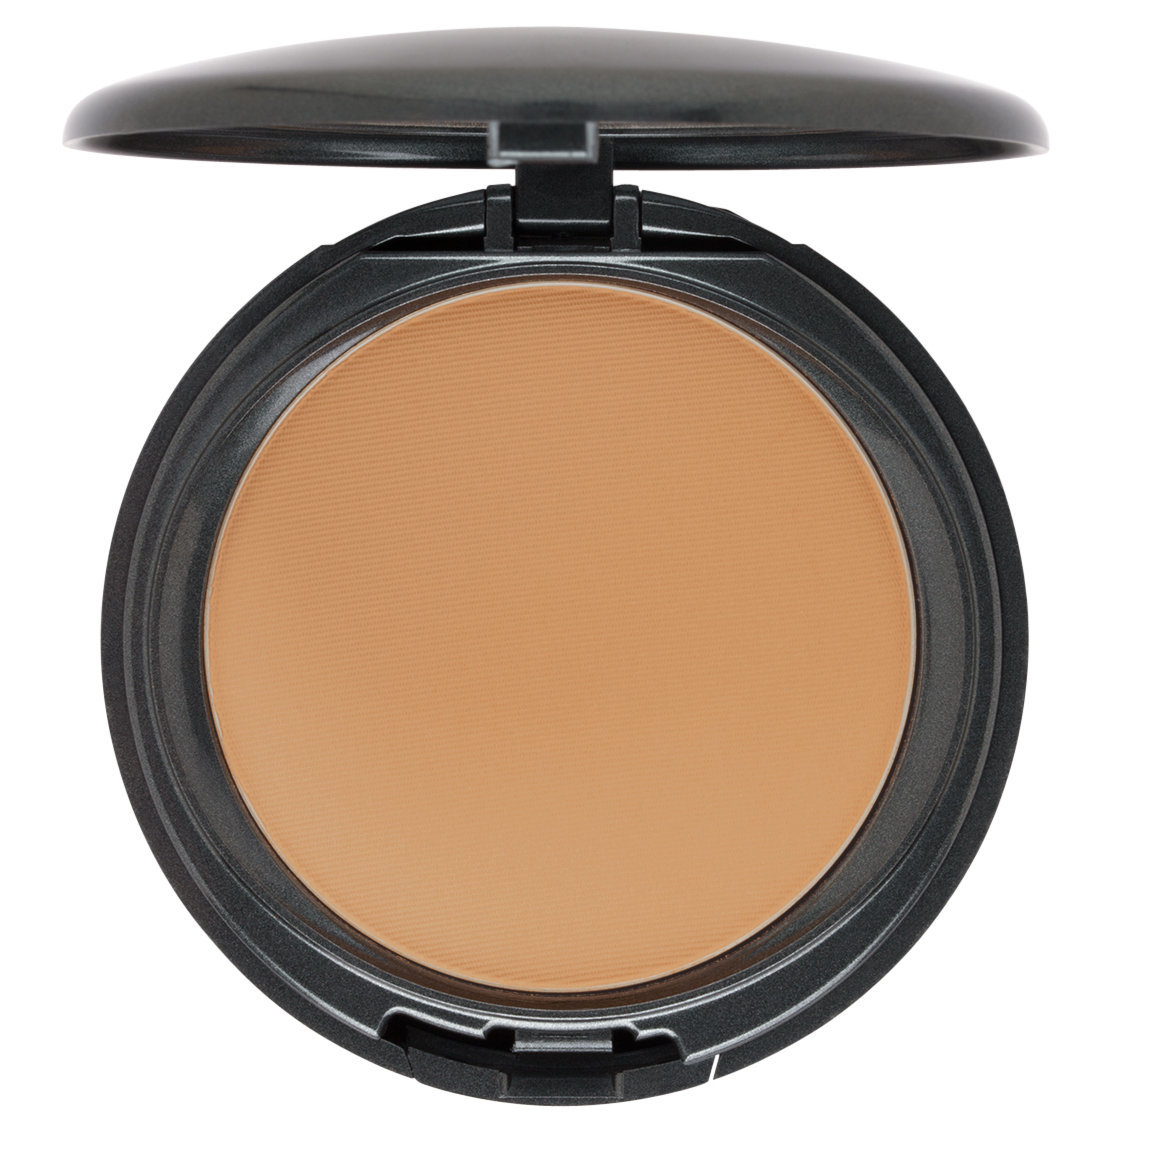 COVER   FX Pressed Mineral Foundation G+60 product swatch.